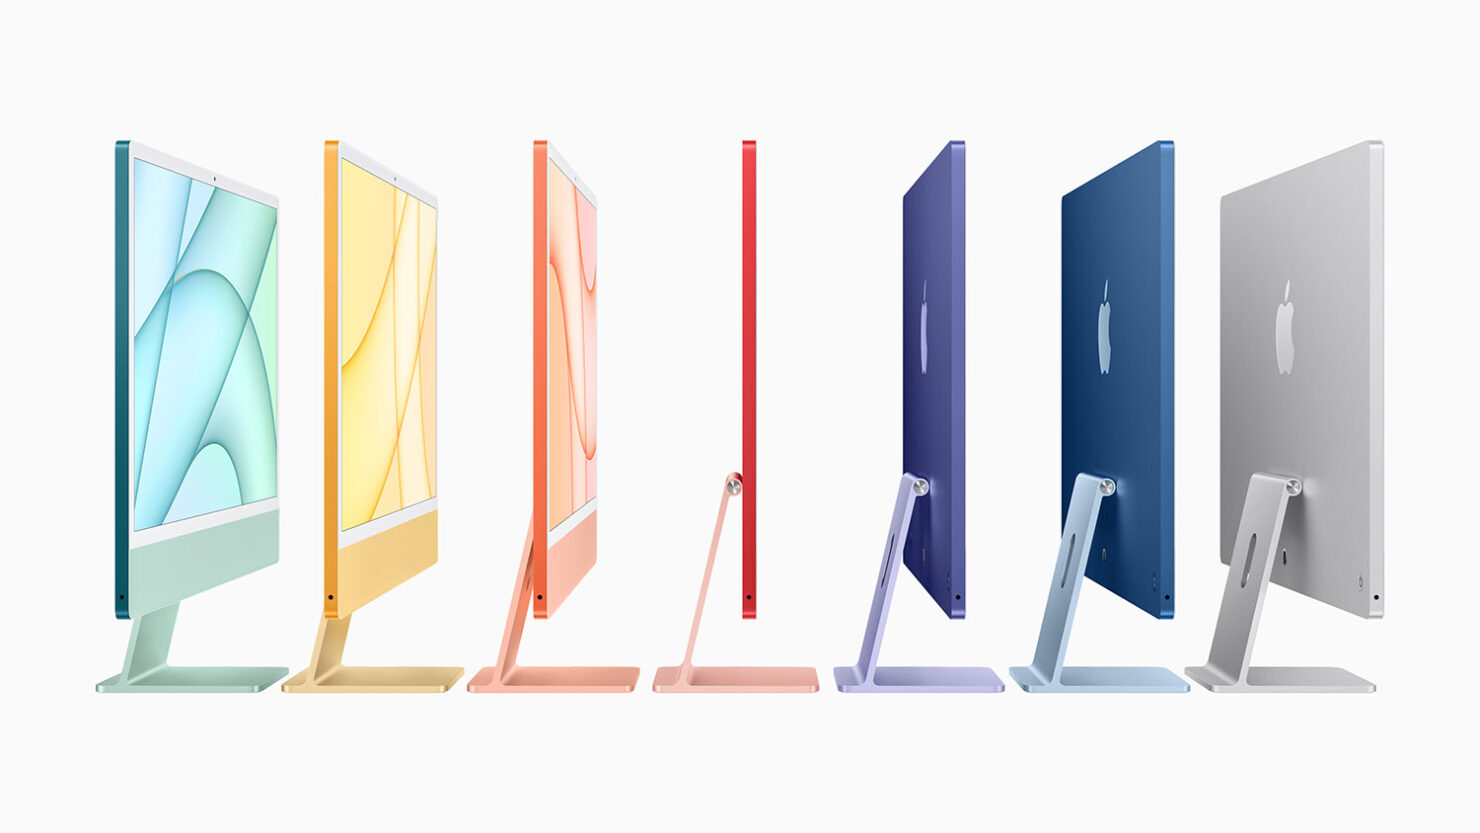 Apple's Redesigned iMac Arrives With the Company's Custom M1 Chip, Along With Multiple Finishes & 4.5K Display